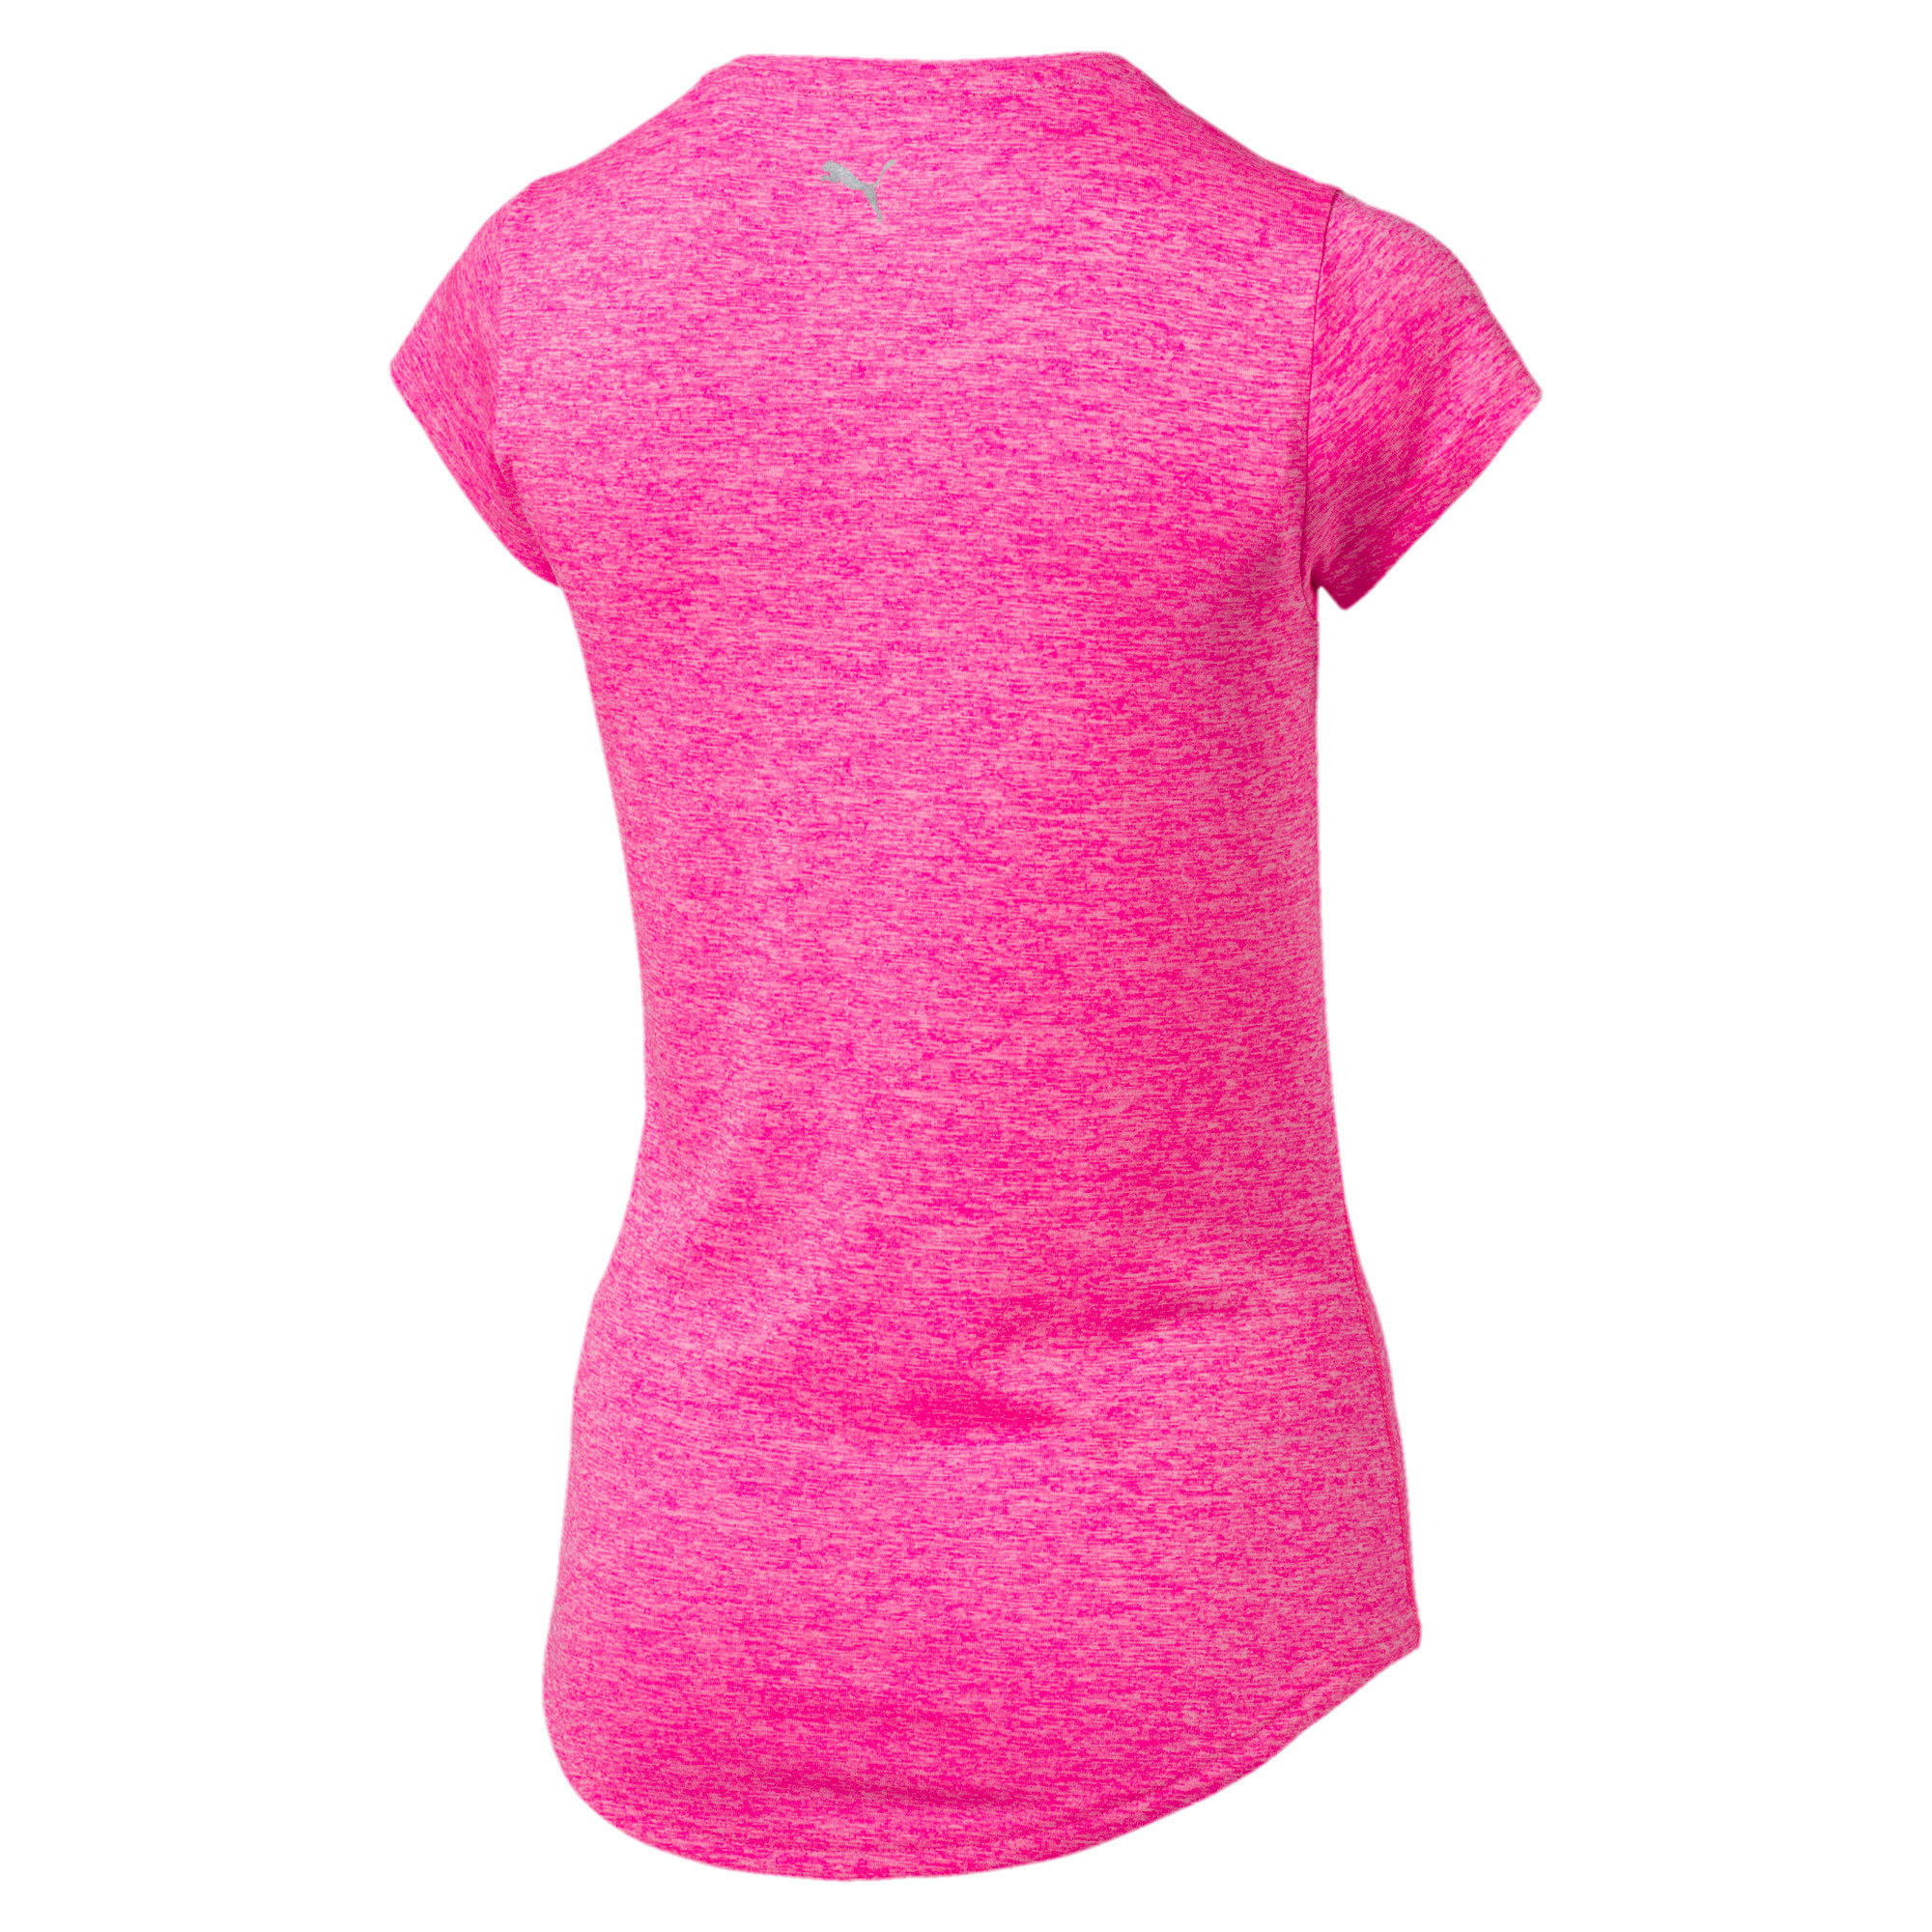 Thumbnail 5 of Active Training Women's Heather Cat T-Shirt, KNOCKOUT PINK Heather, medium-IND